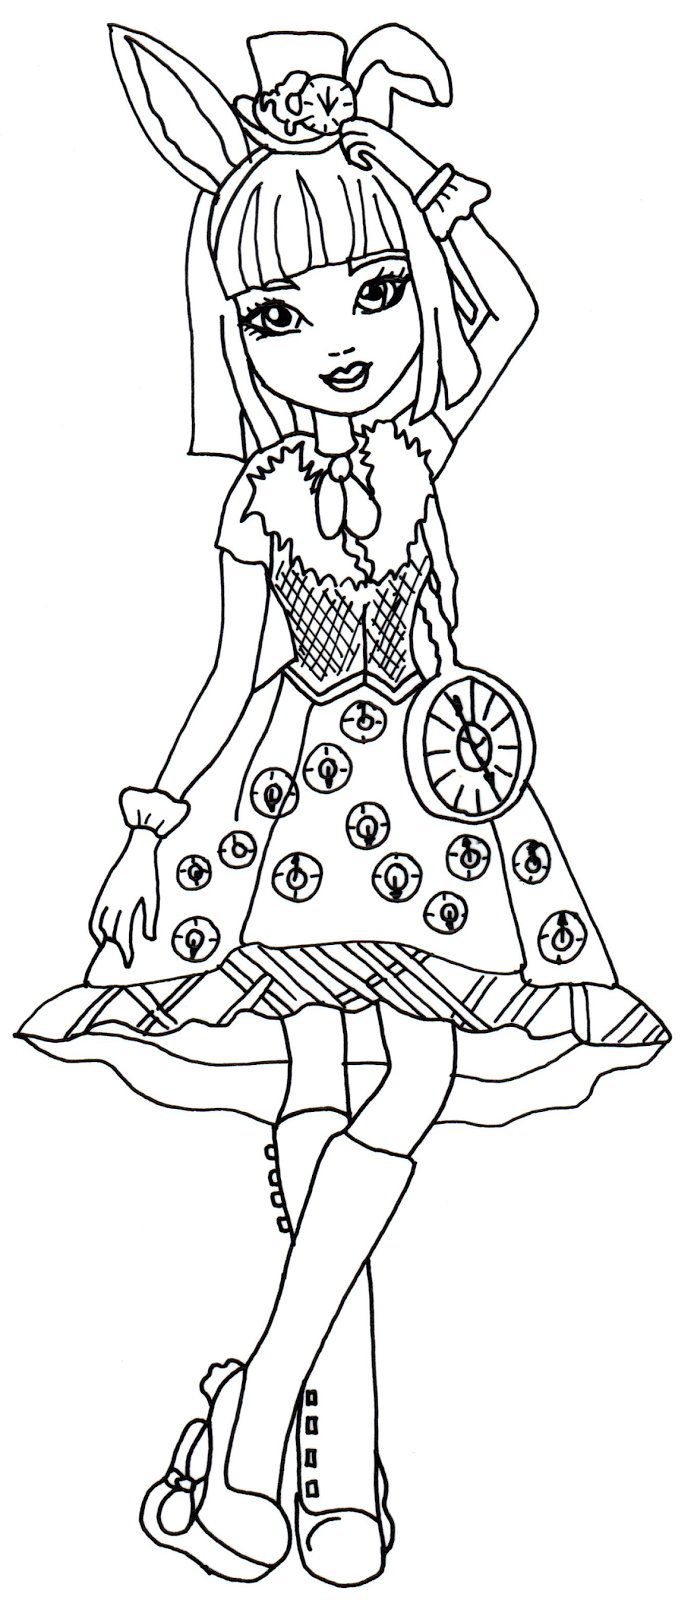 Gratis Ausmalbilder Monster High : Coloring Pages Of Raven Queen Best Ideas For Printable And